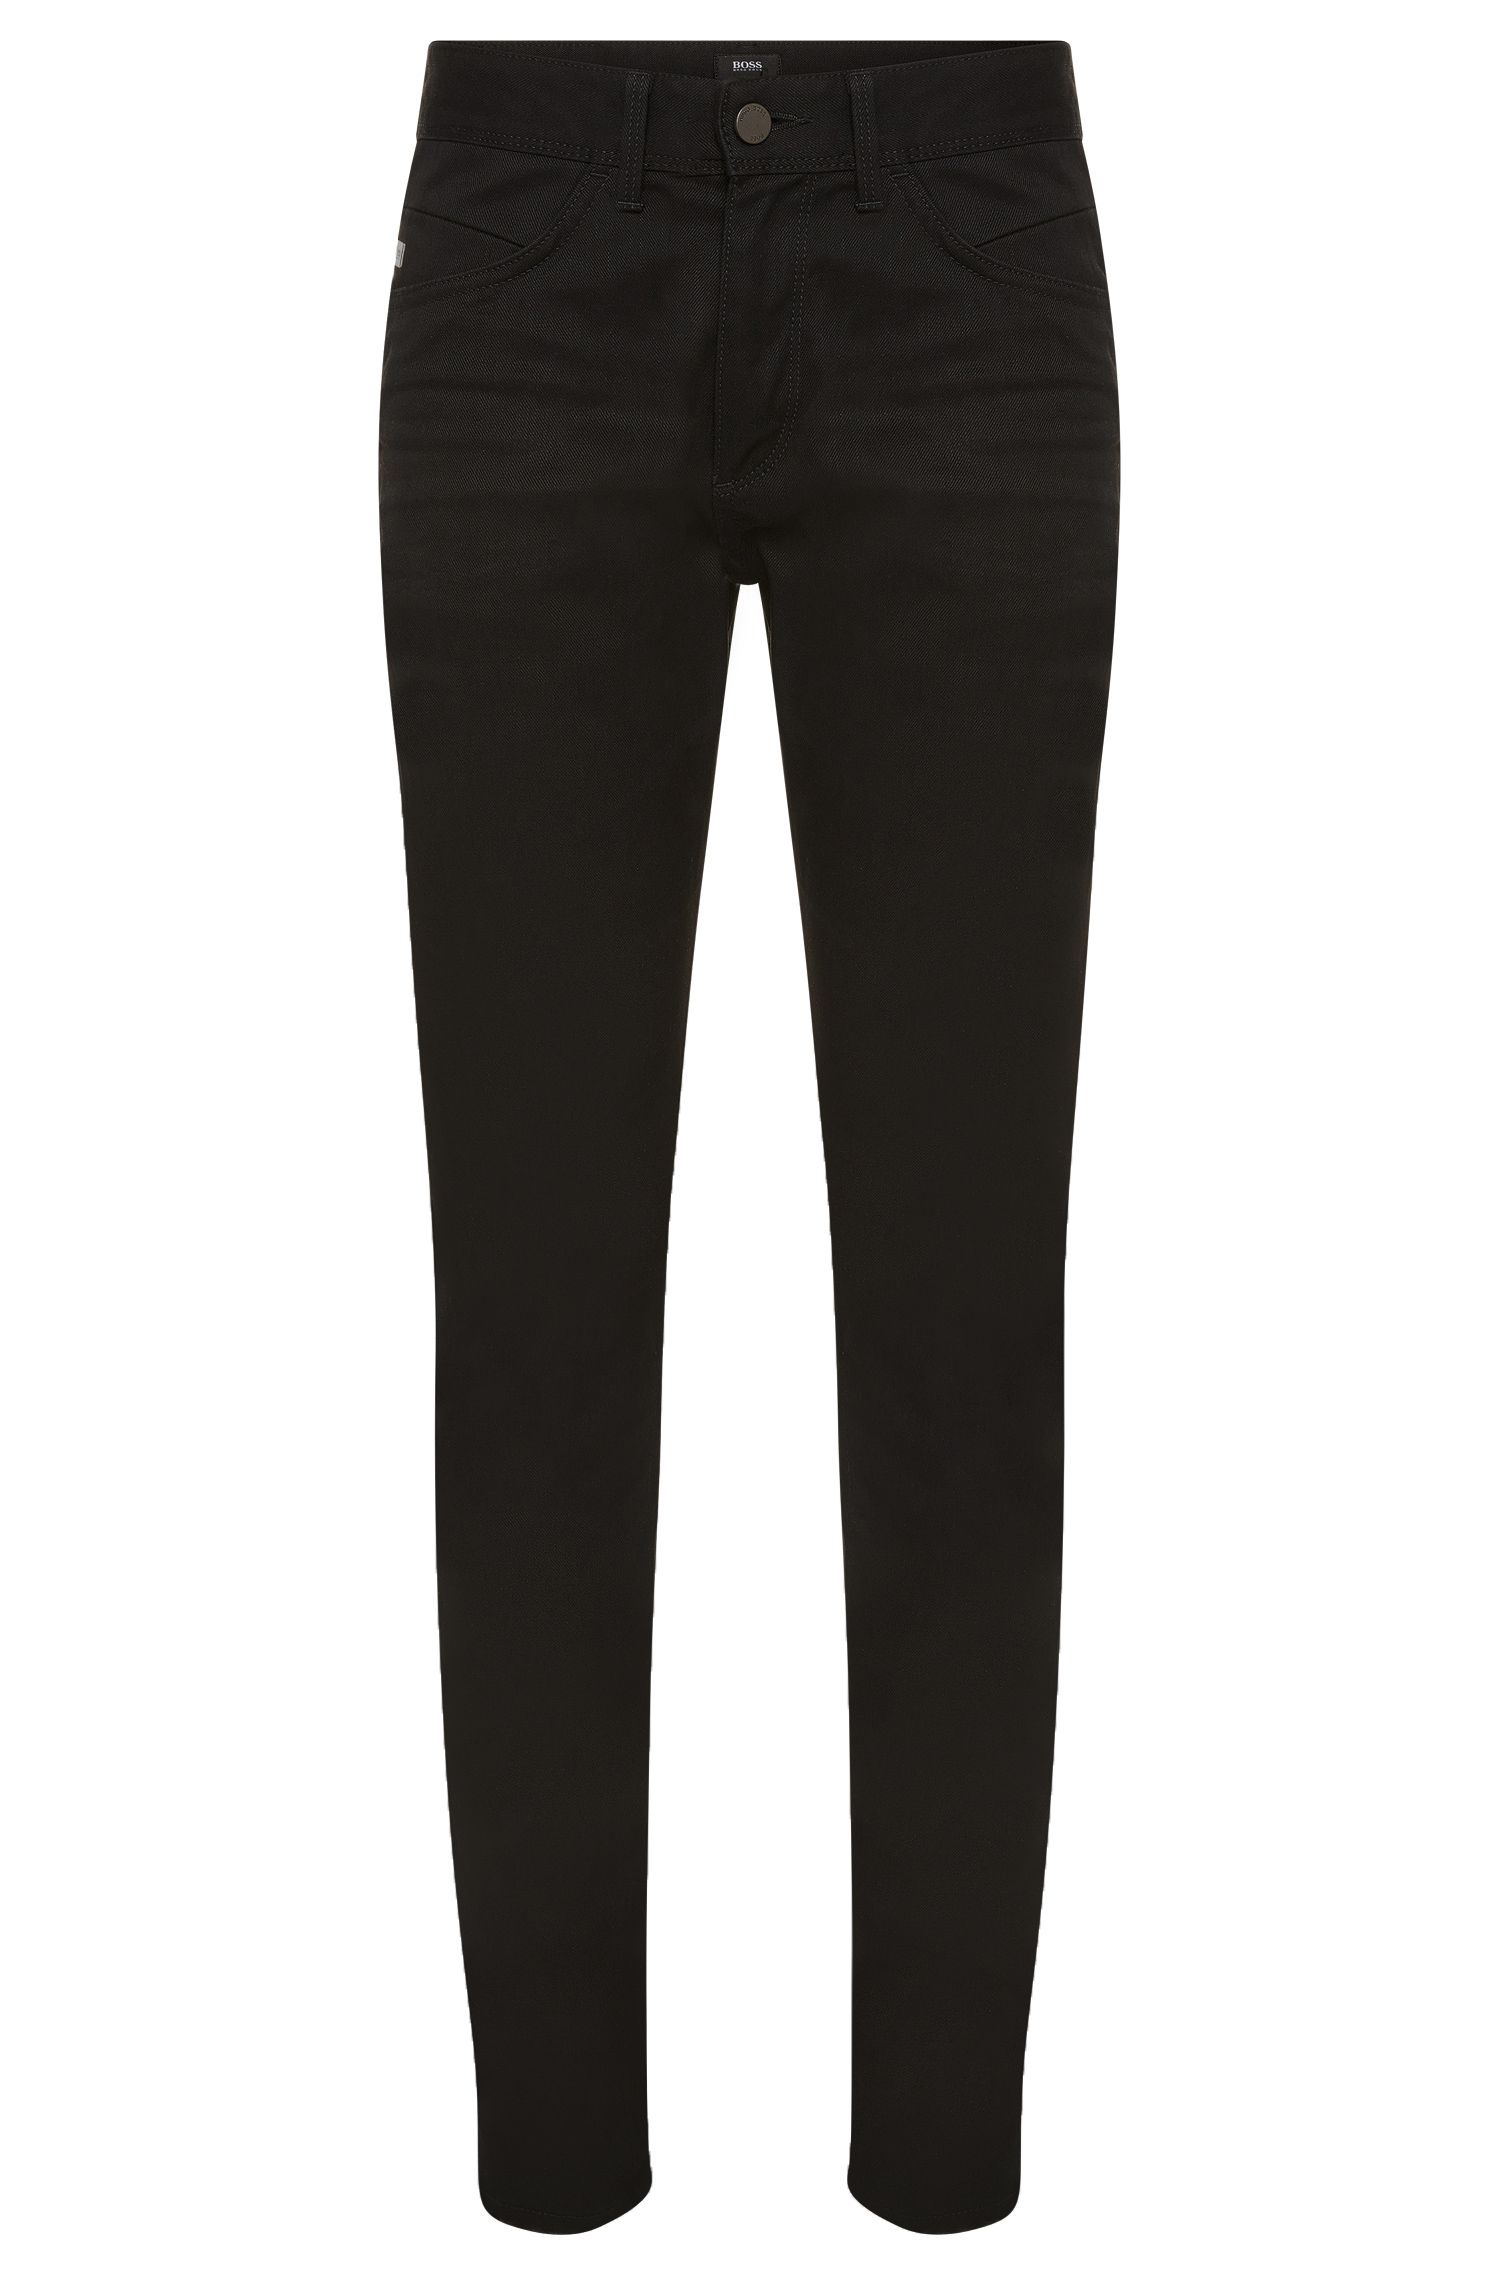 'Delaware-MB' | Slim Fit, 10 oz Stretch Cotton Jeans